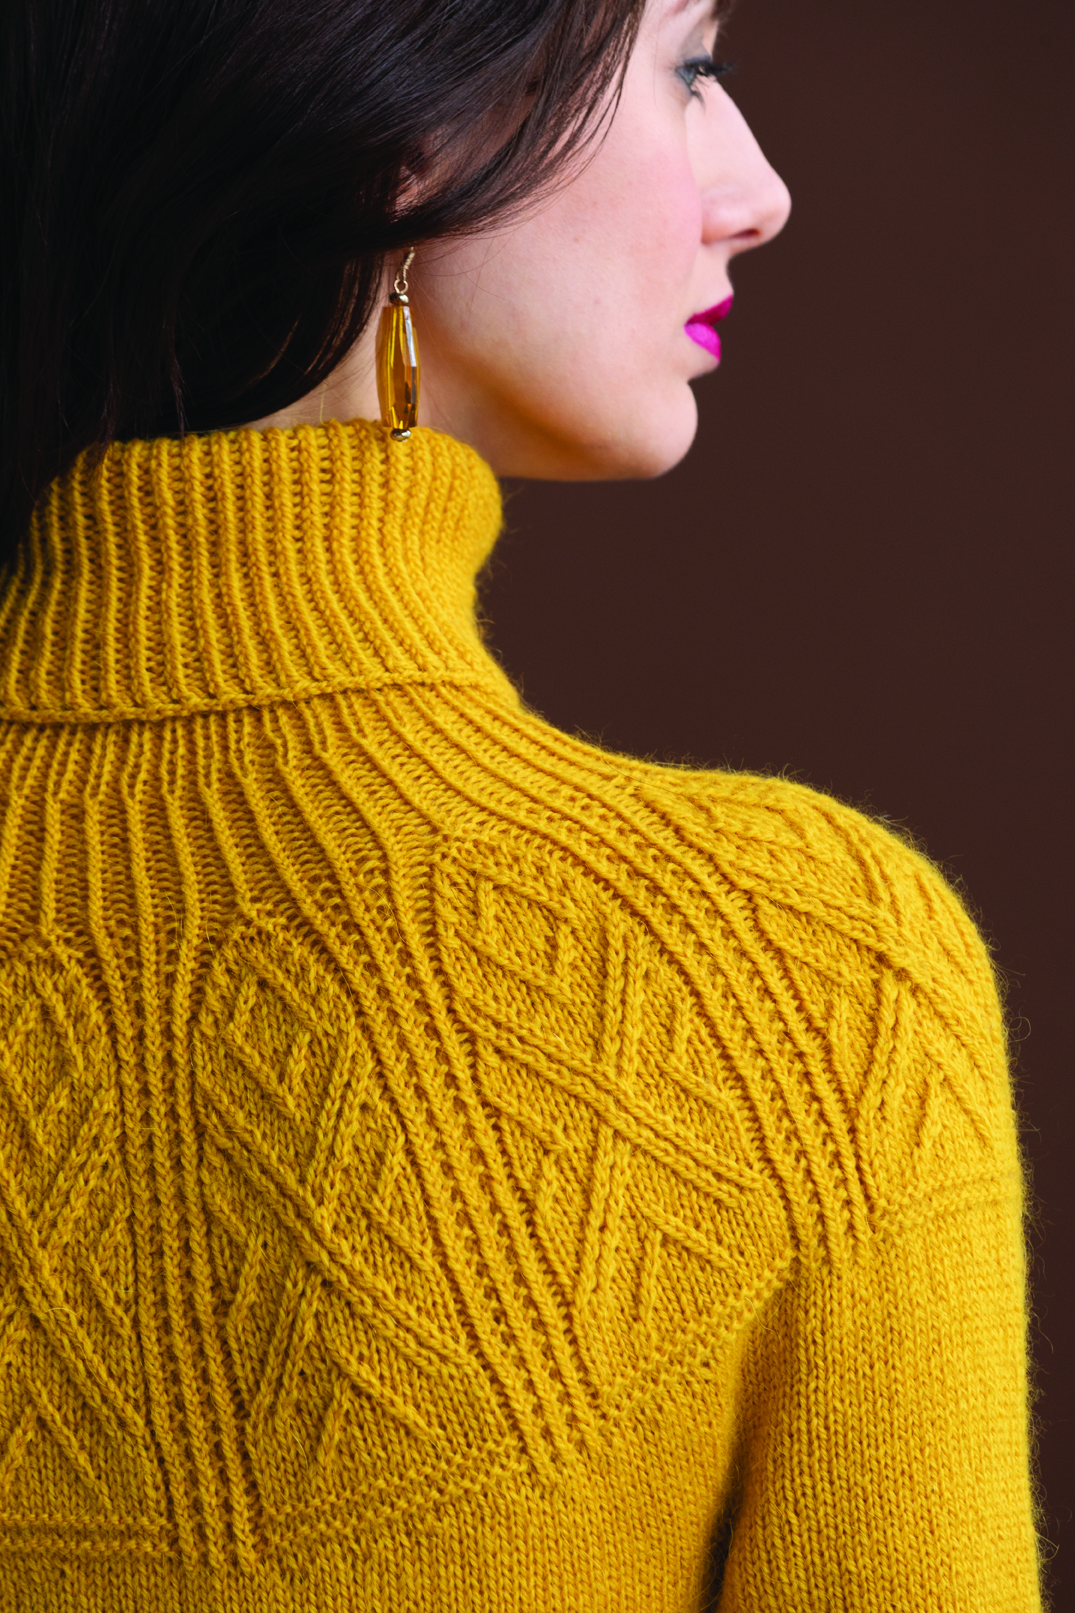 Designer Feature: Yoked Pullover by Norah Gaughan / Vogue